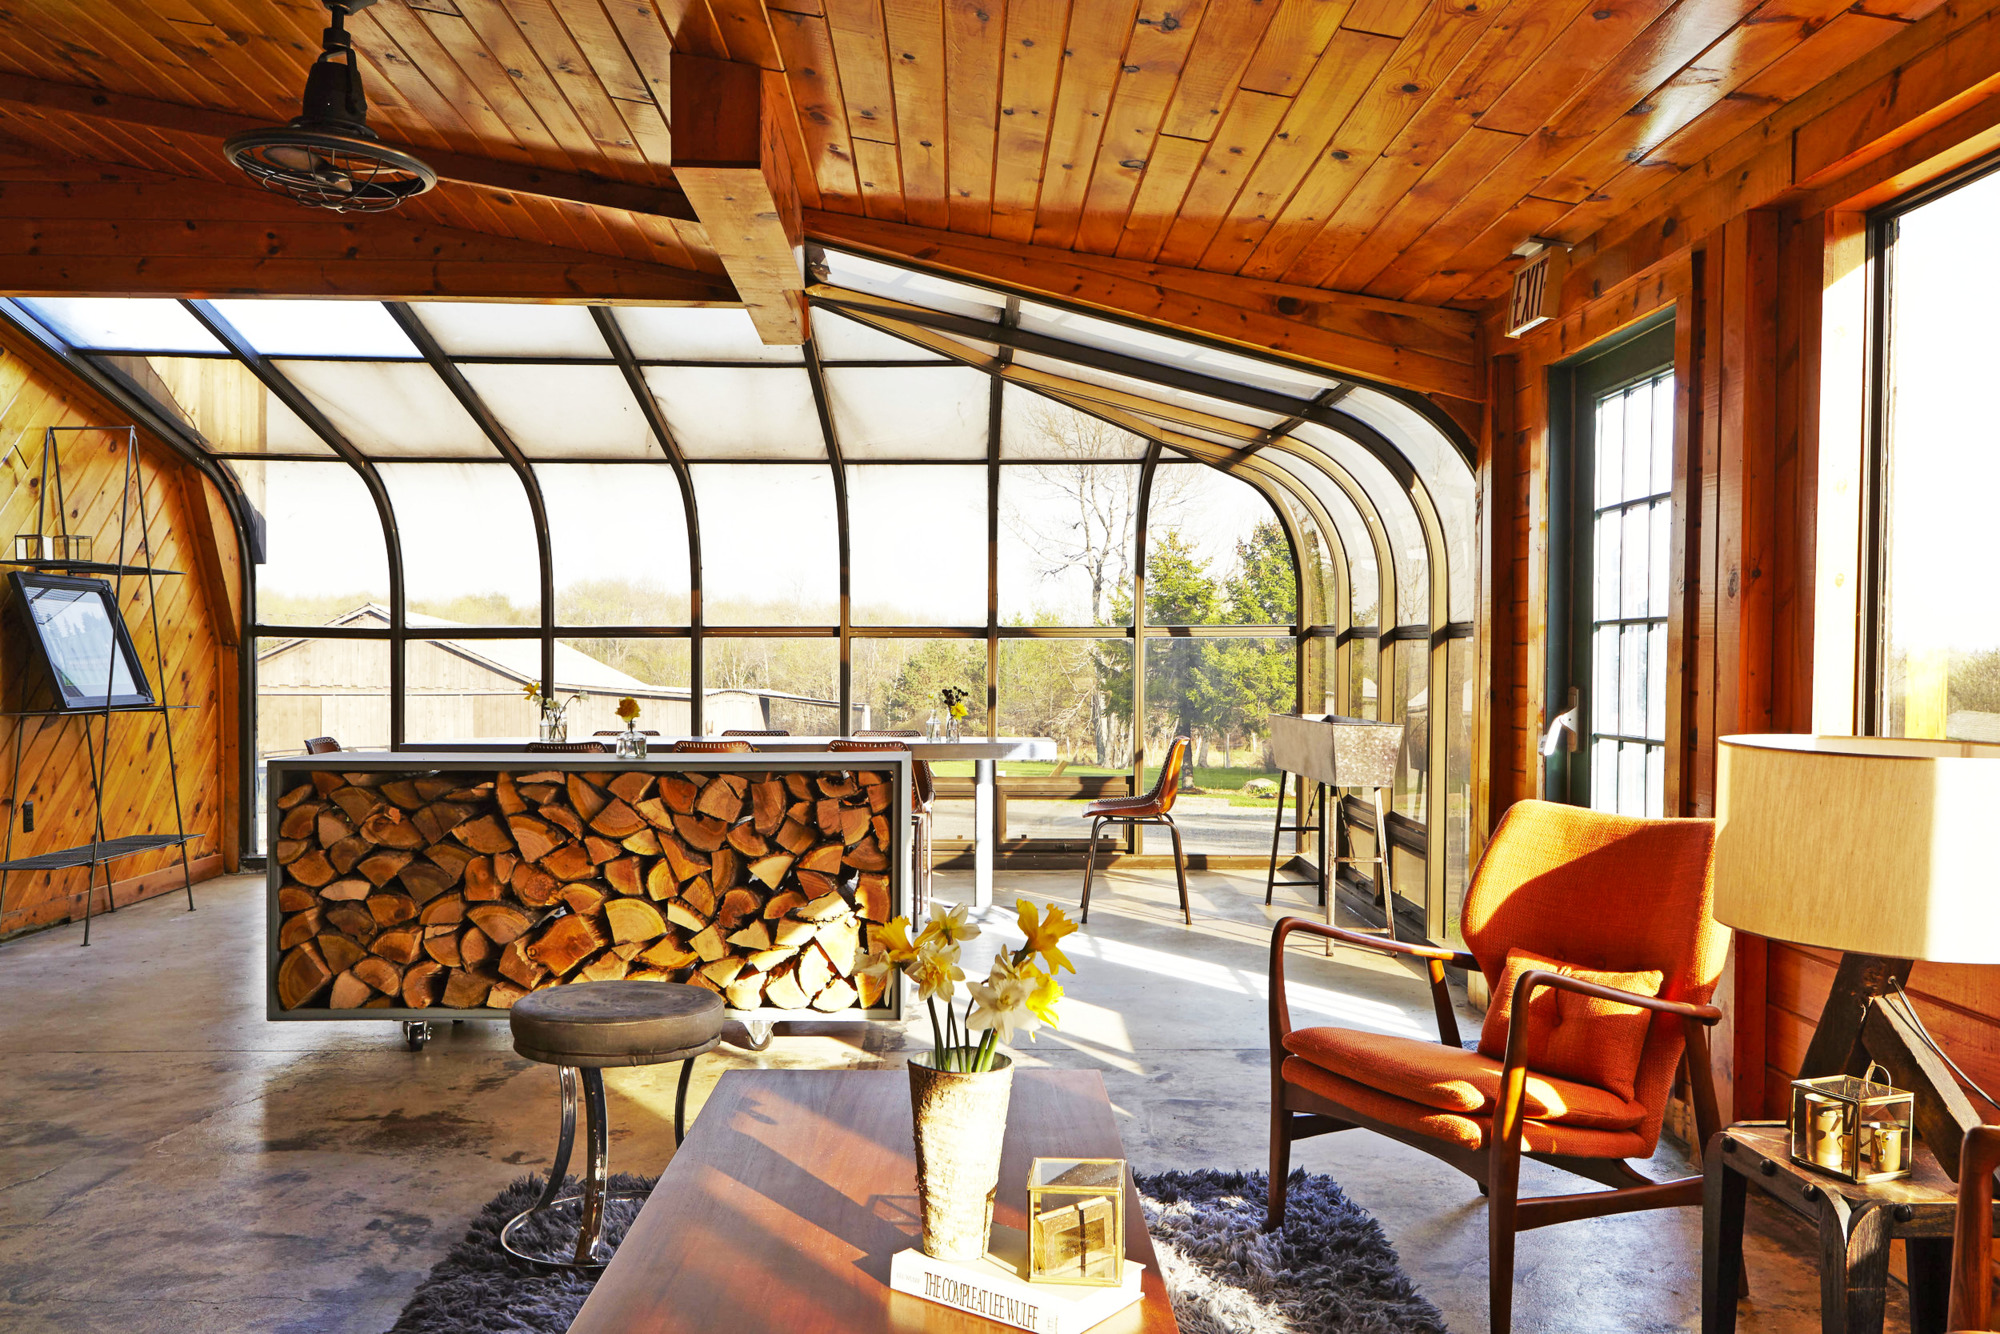 17 Cool Places To Stay In Upstate New York